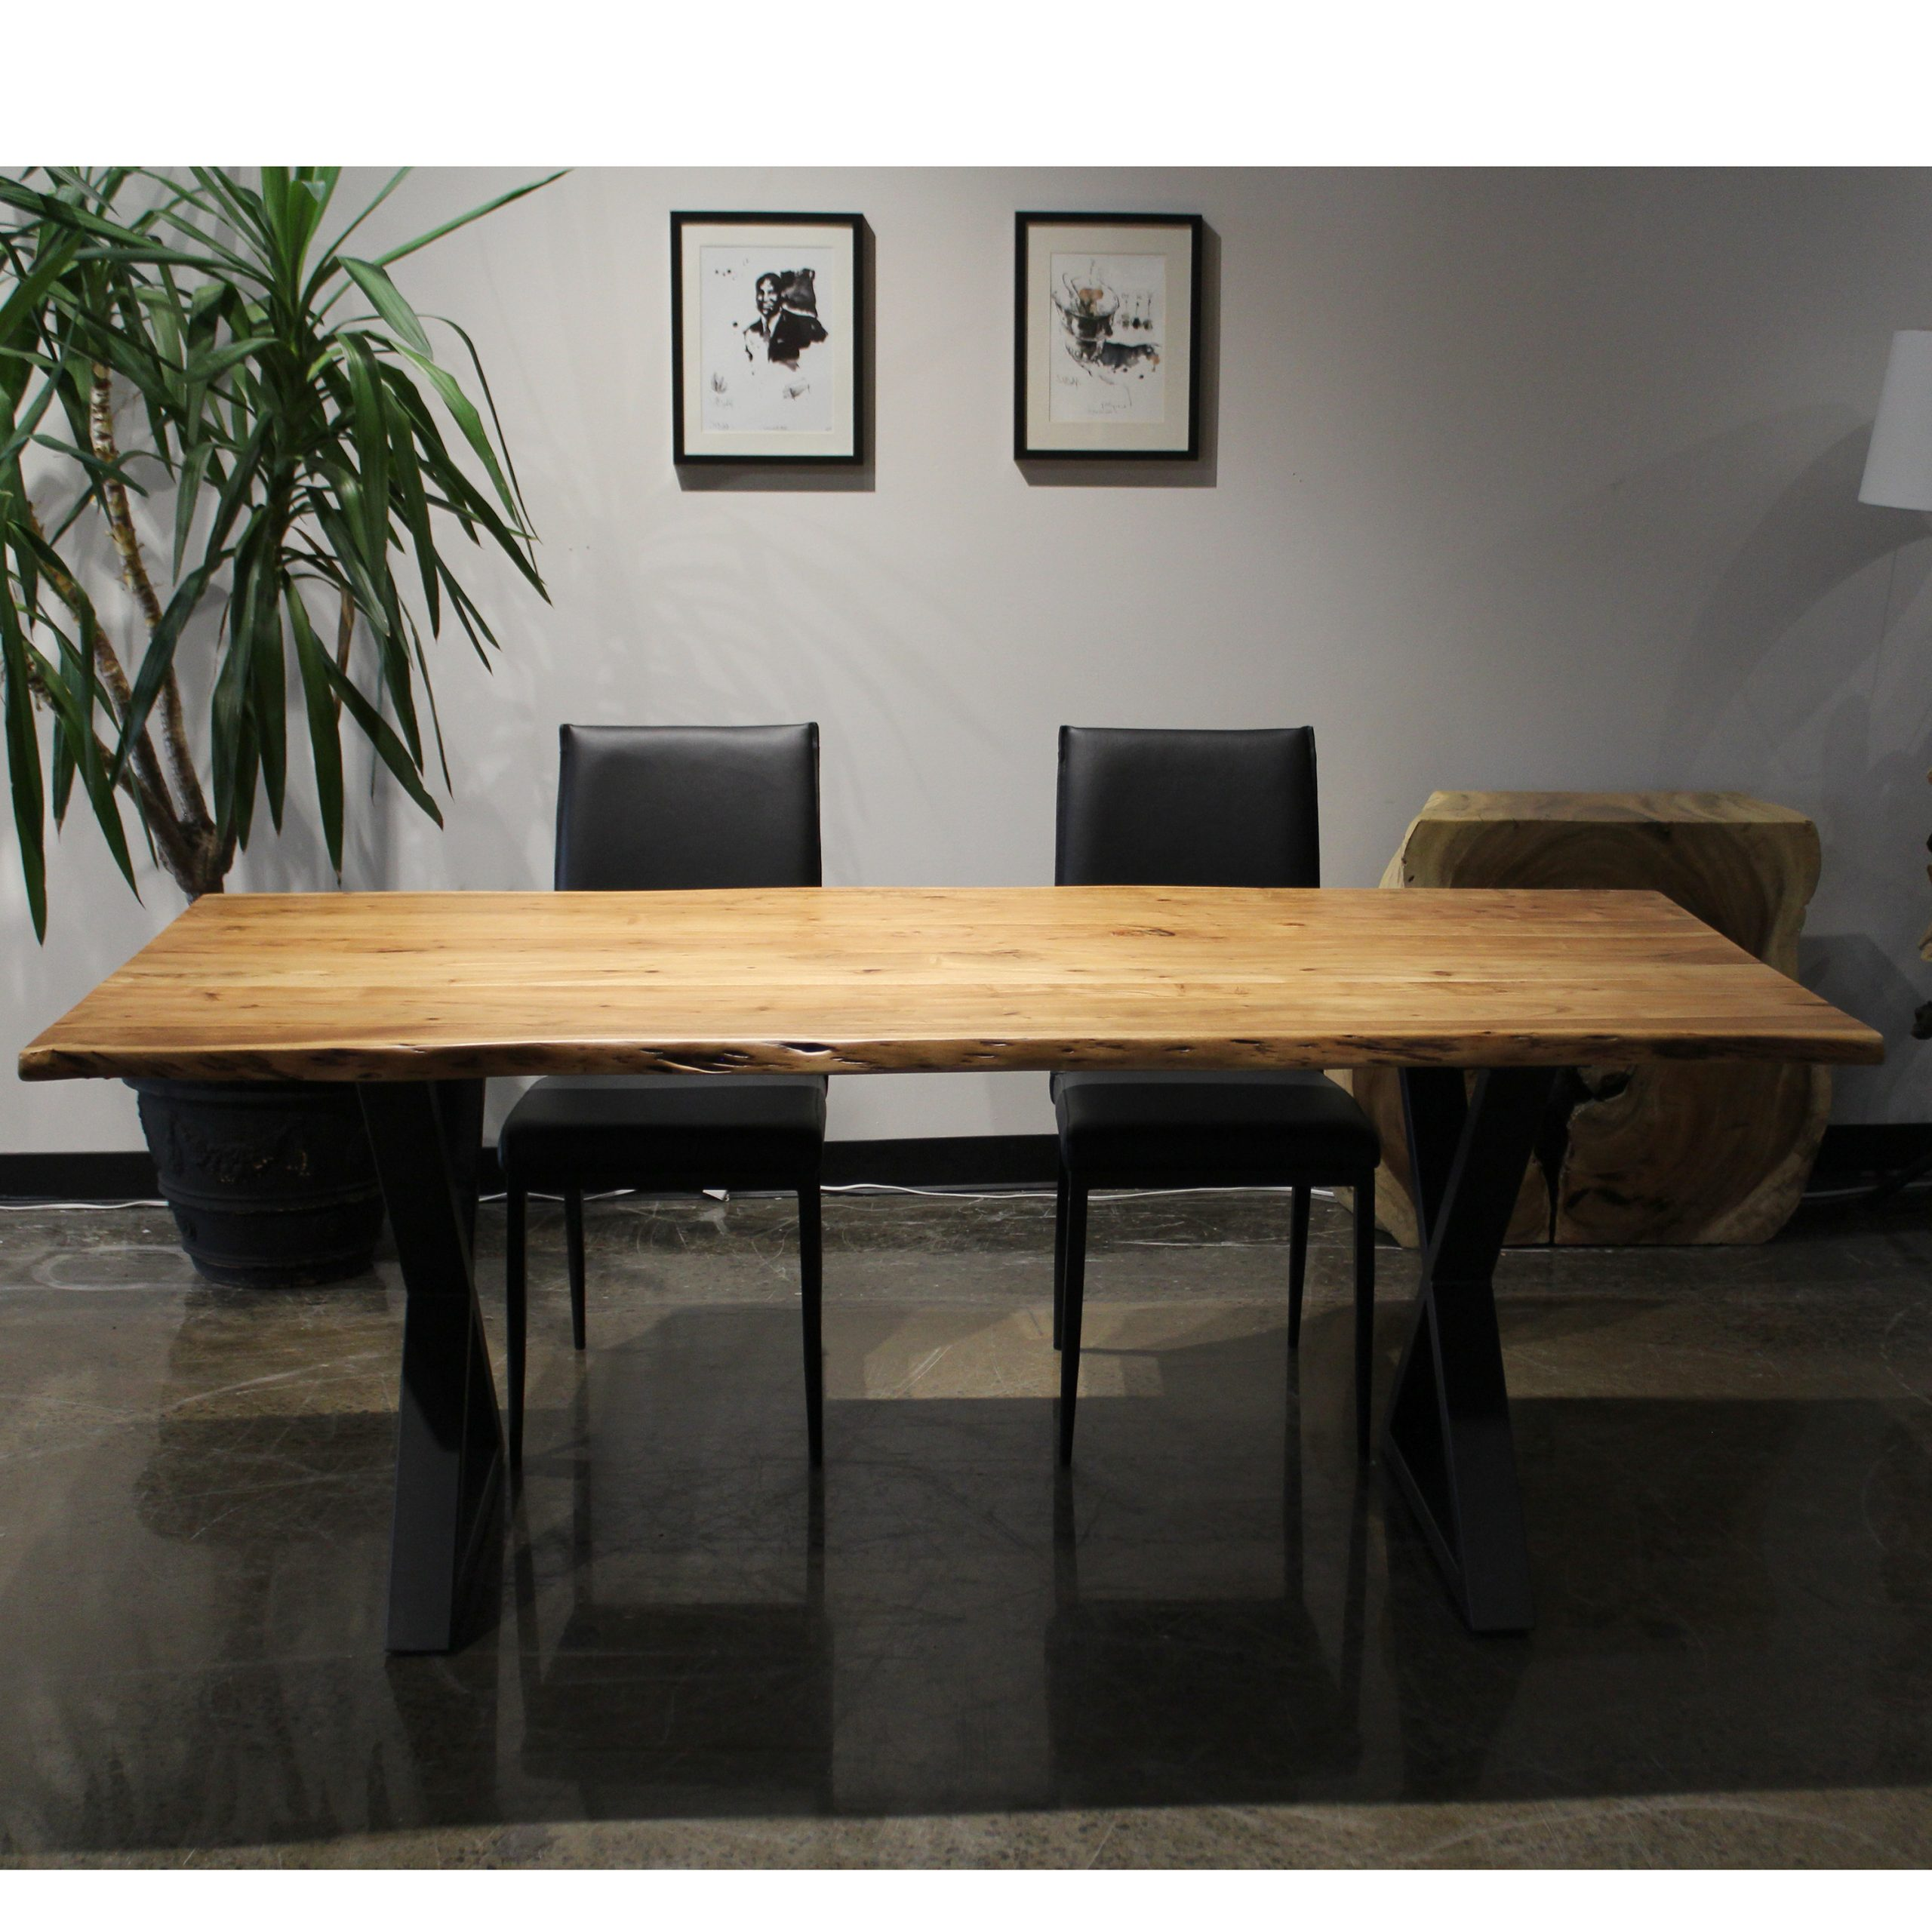 Most Current Acacia Dining Tables With Black Rocket Legs Within Corcoran Walnut Acacia Dining Table – 80 In – Black Metal U Legs (View 13 of 30)